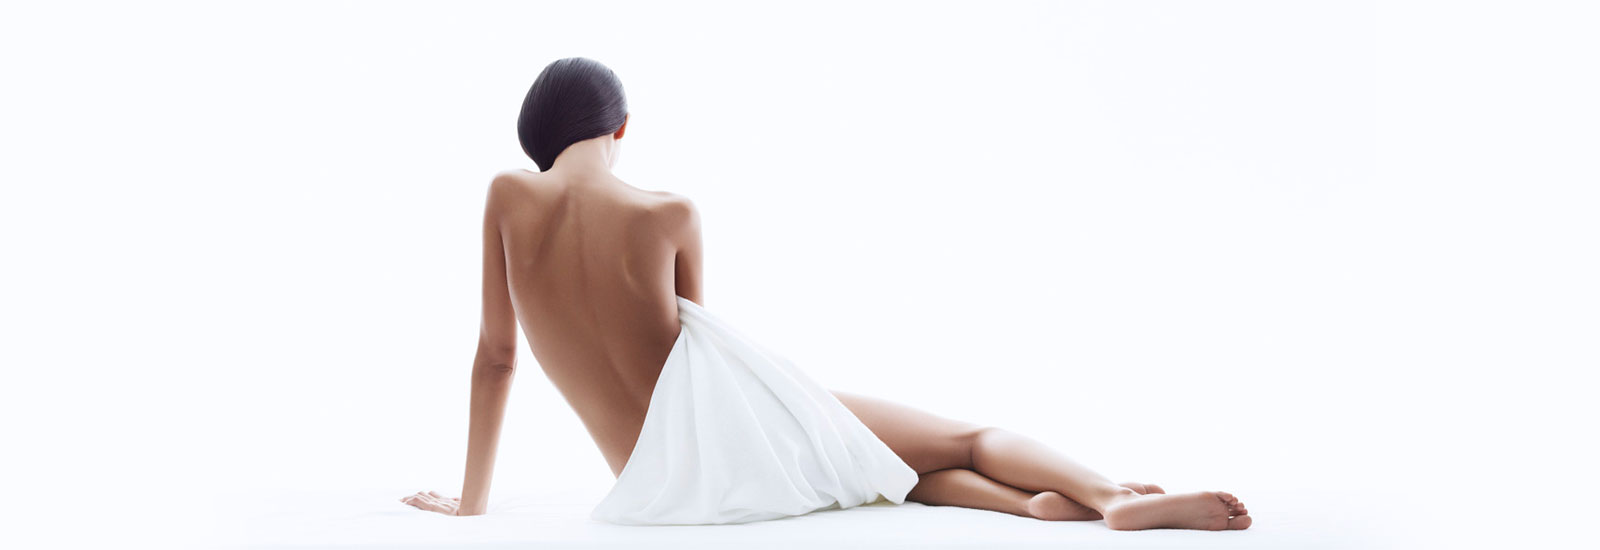 SIGNATURE BODY TREATMENTS